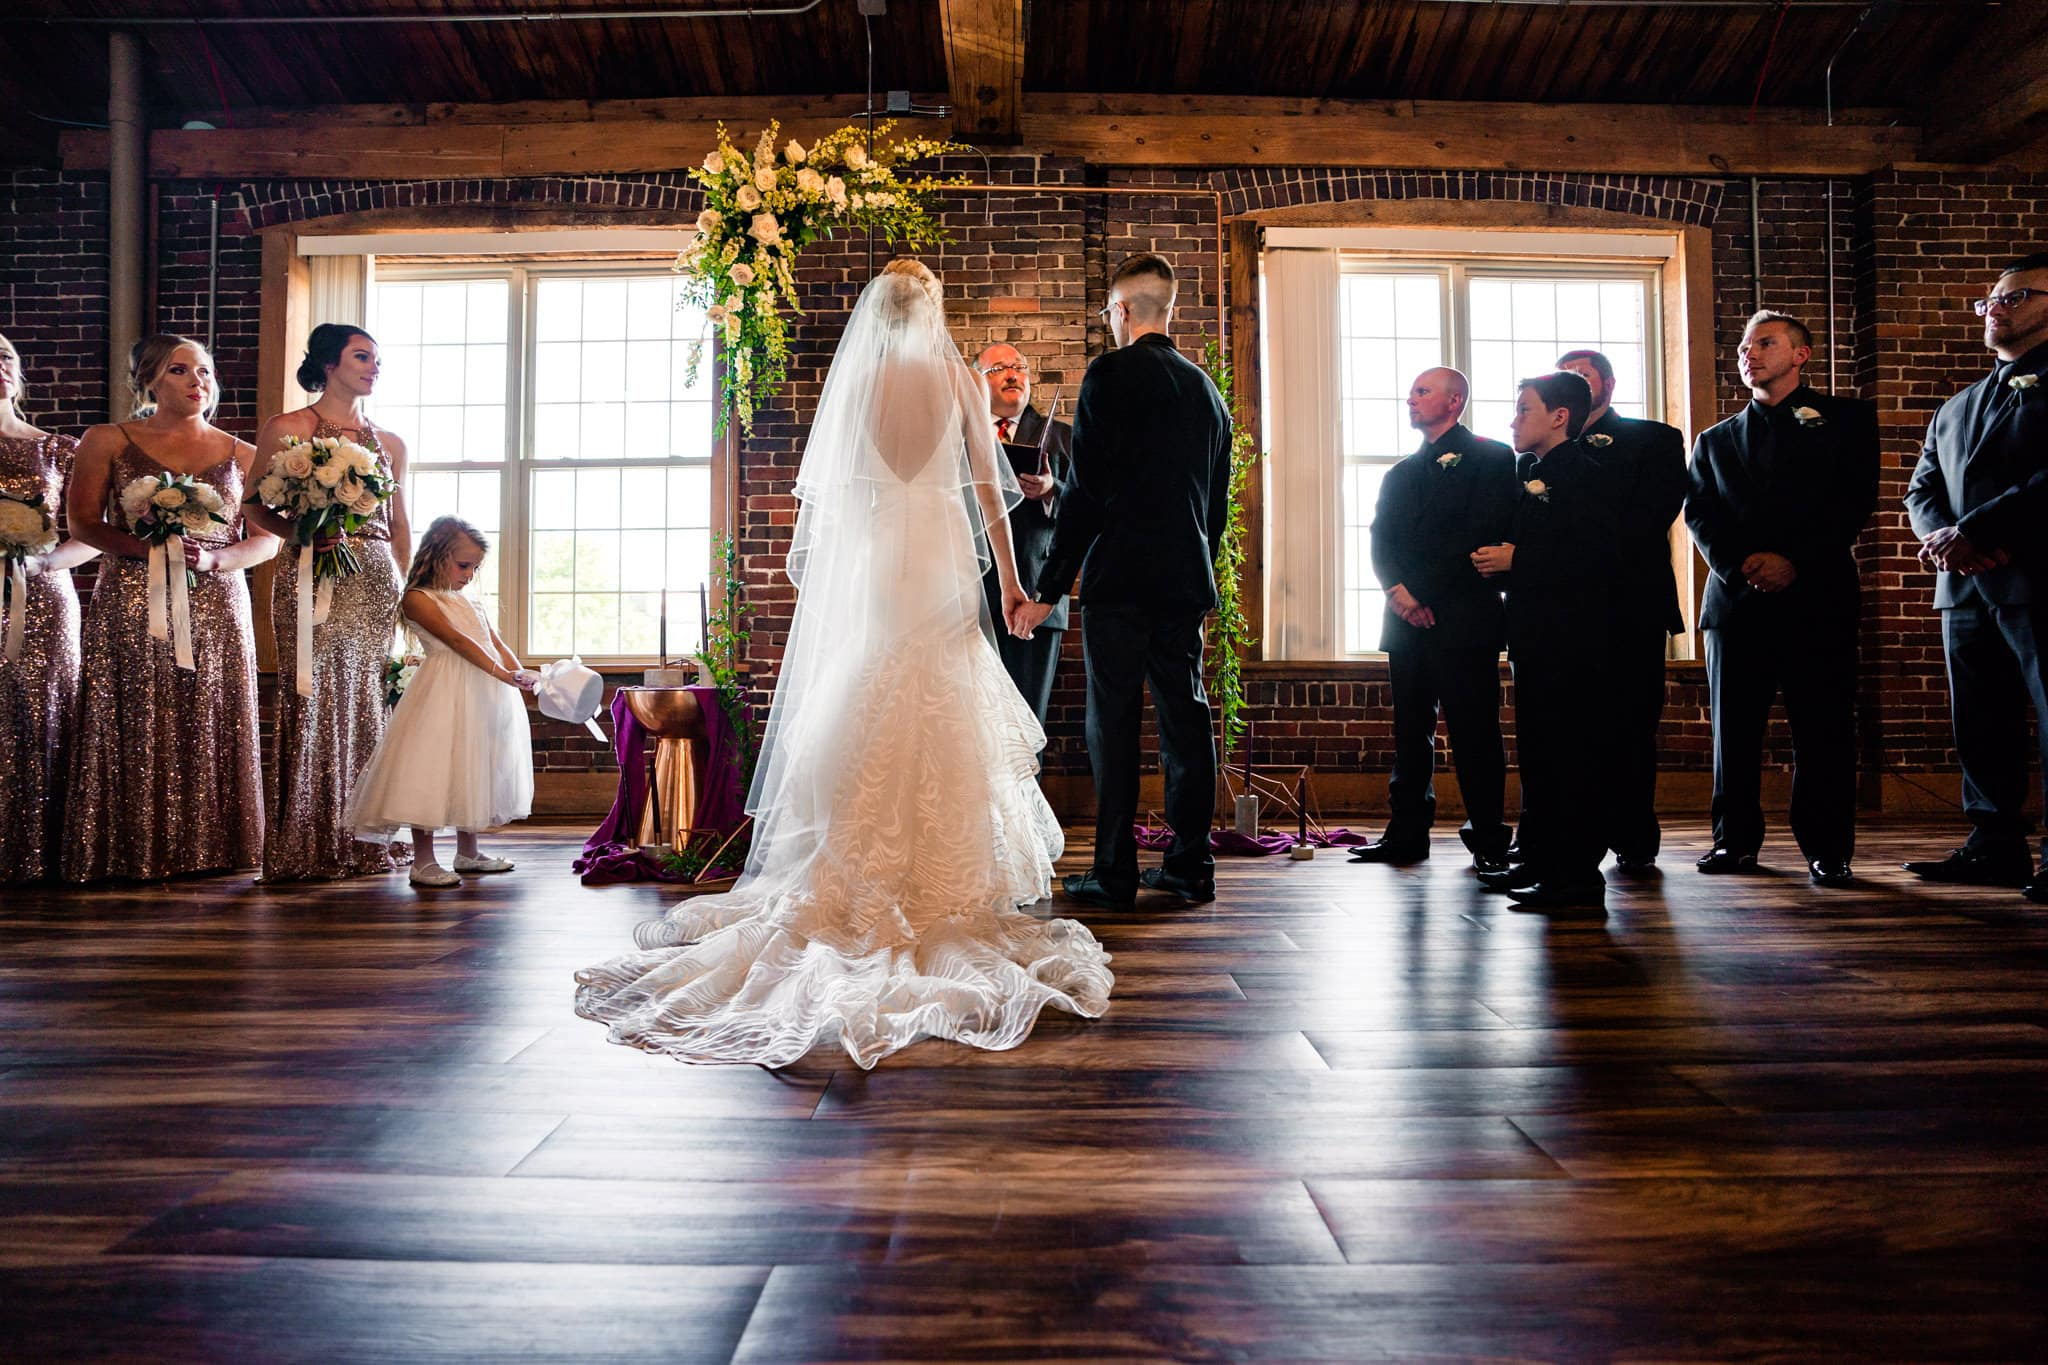 Weddings at Top of the Market